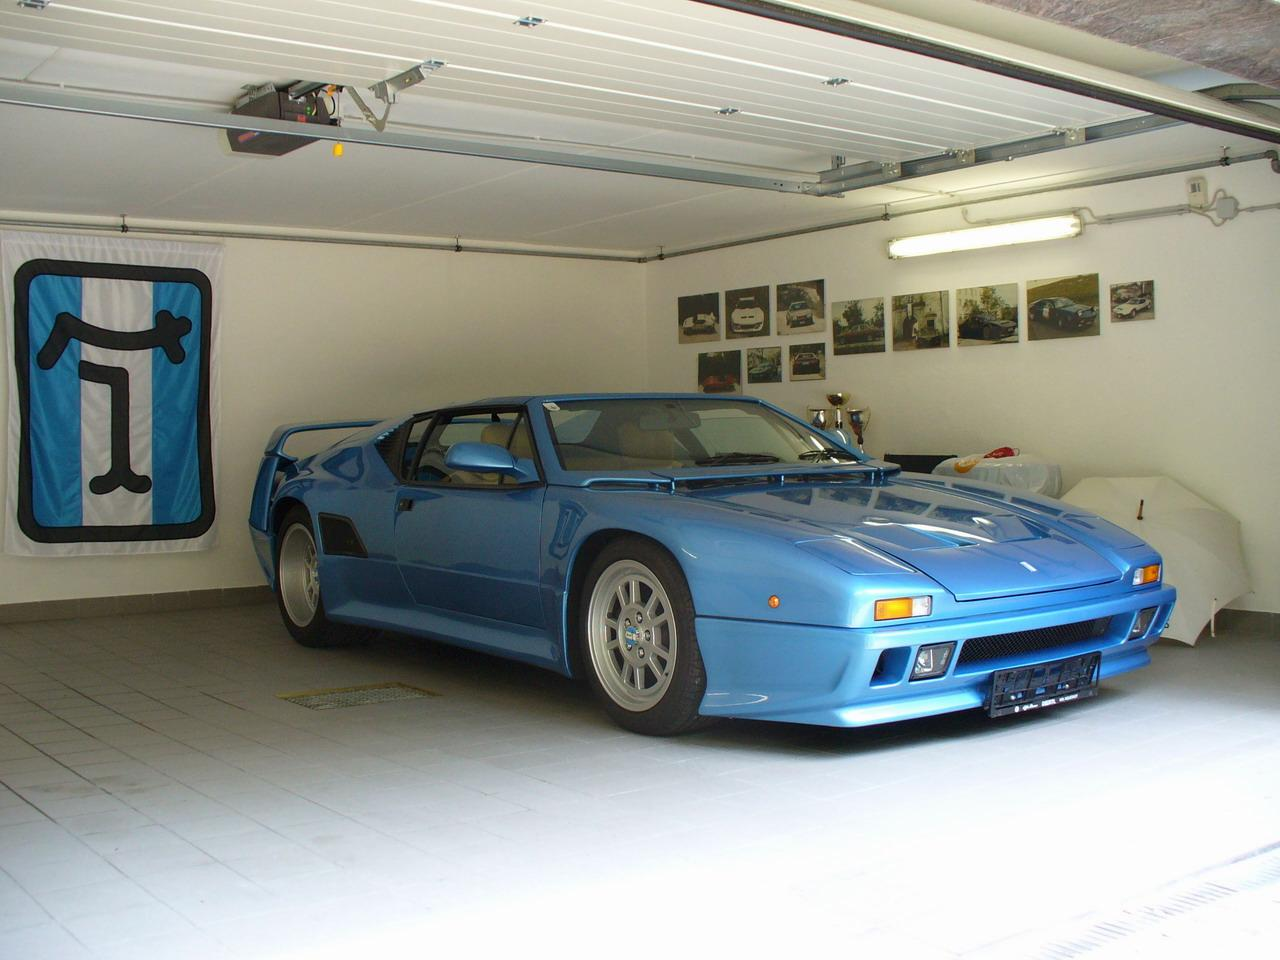 1000 images about favorite cars on pinterest exotic for Porte cochere vs carport